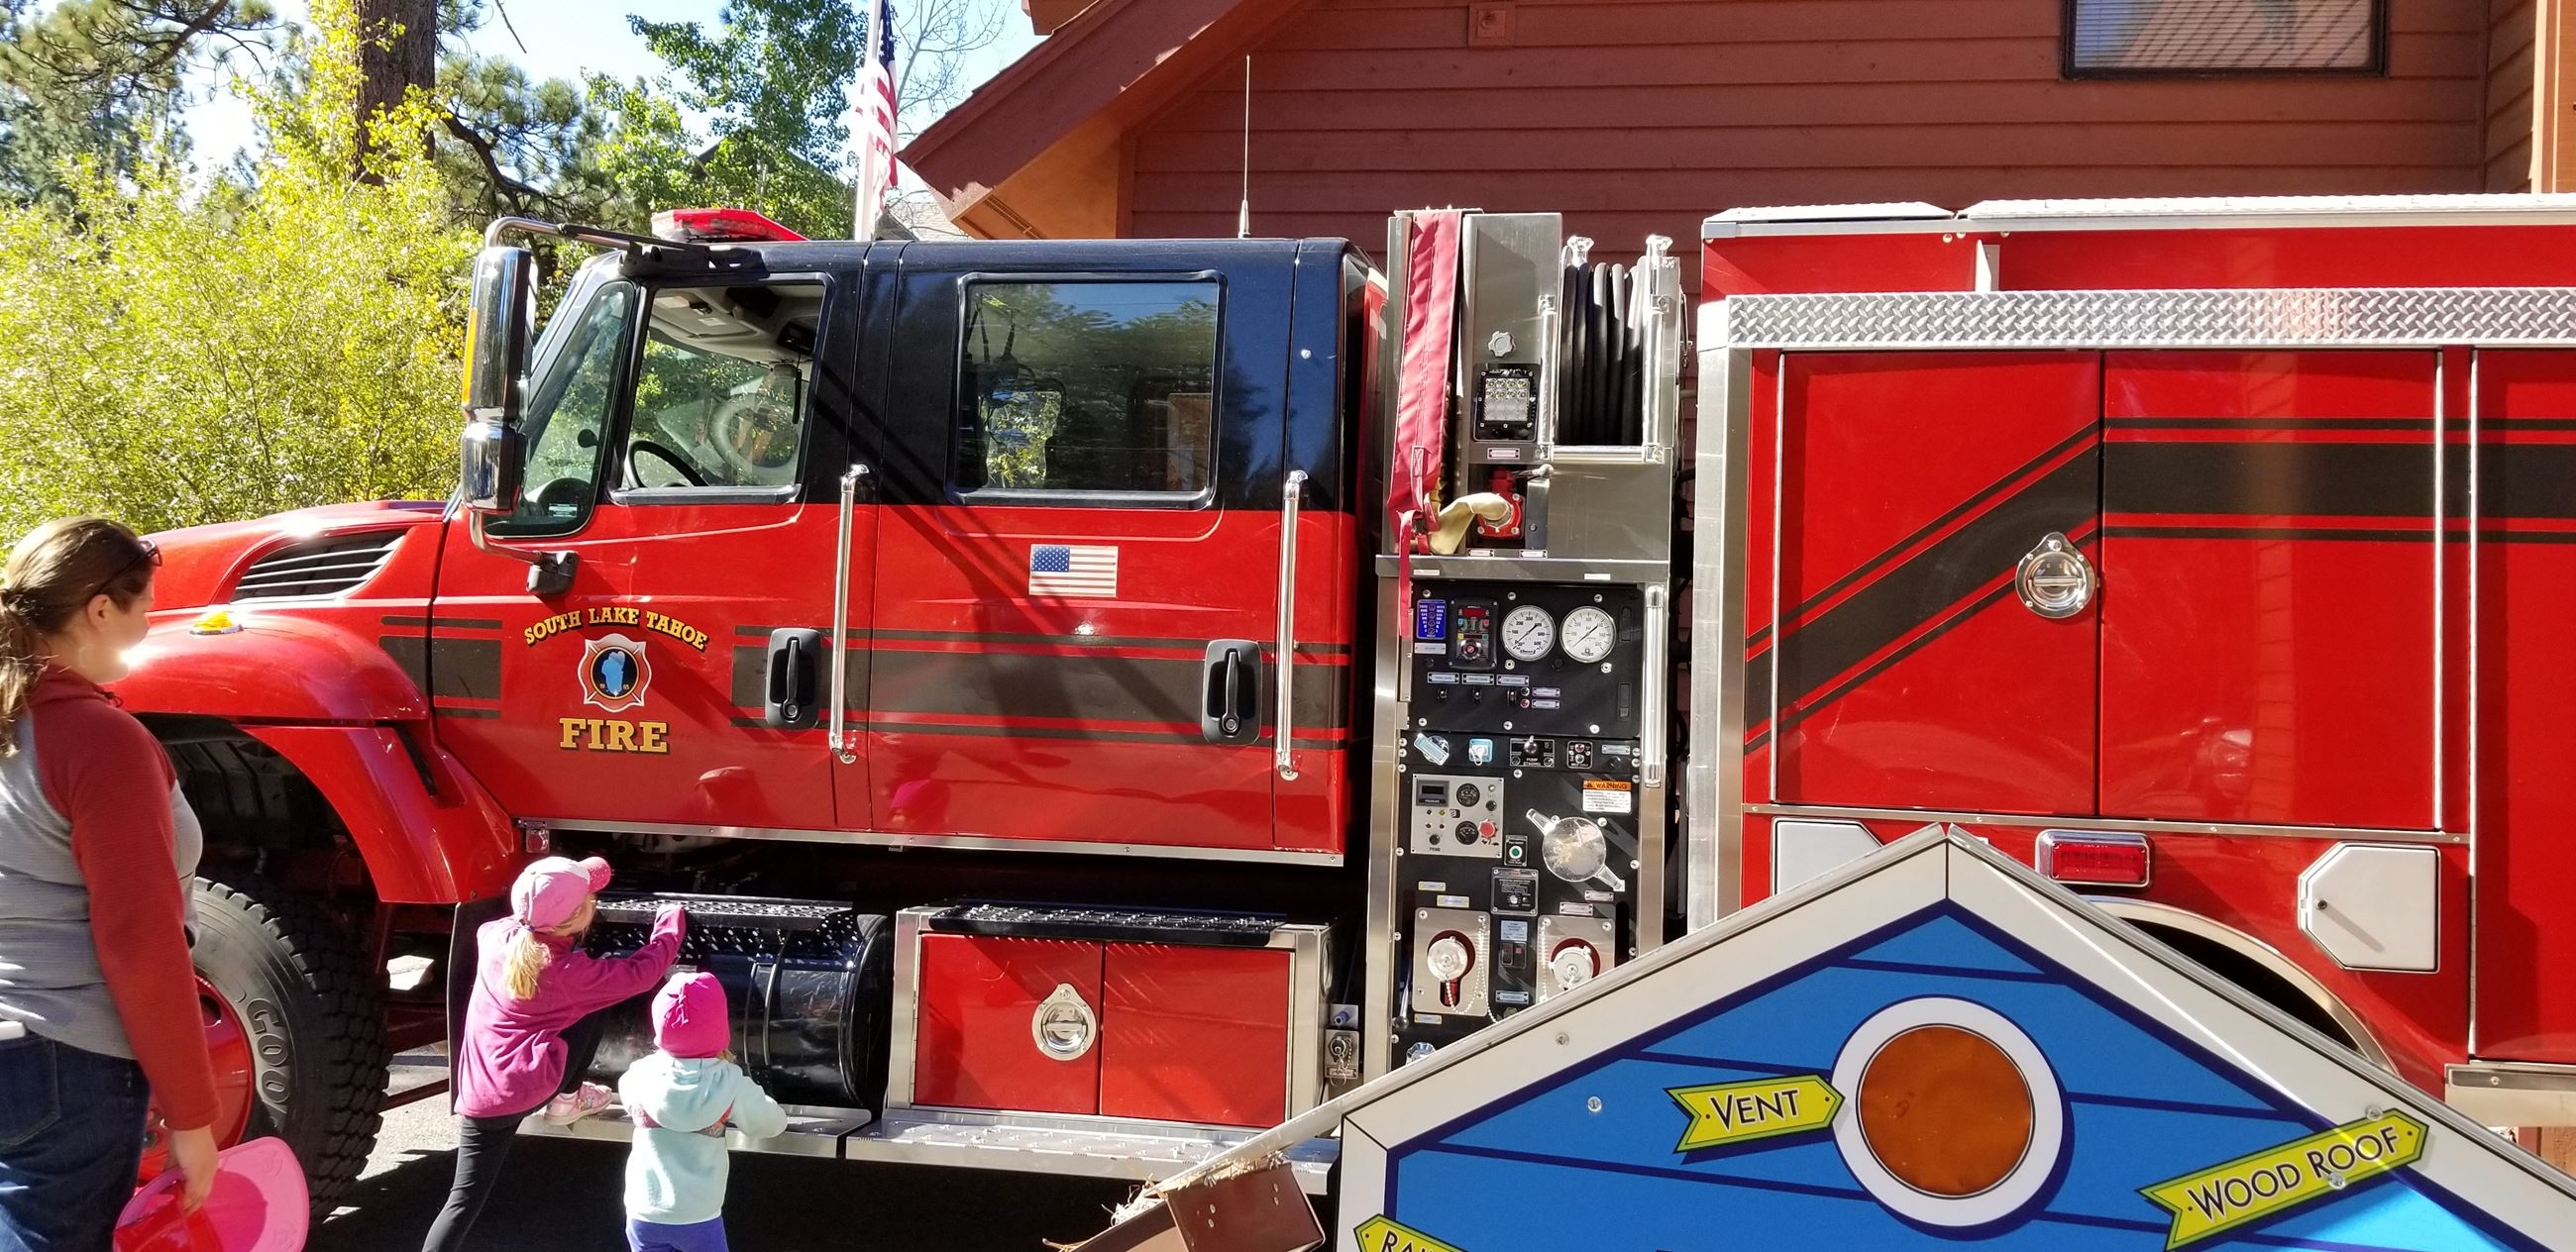 kids looking at the fire engine during open house